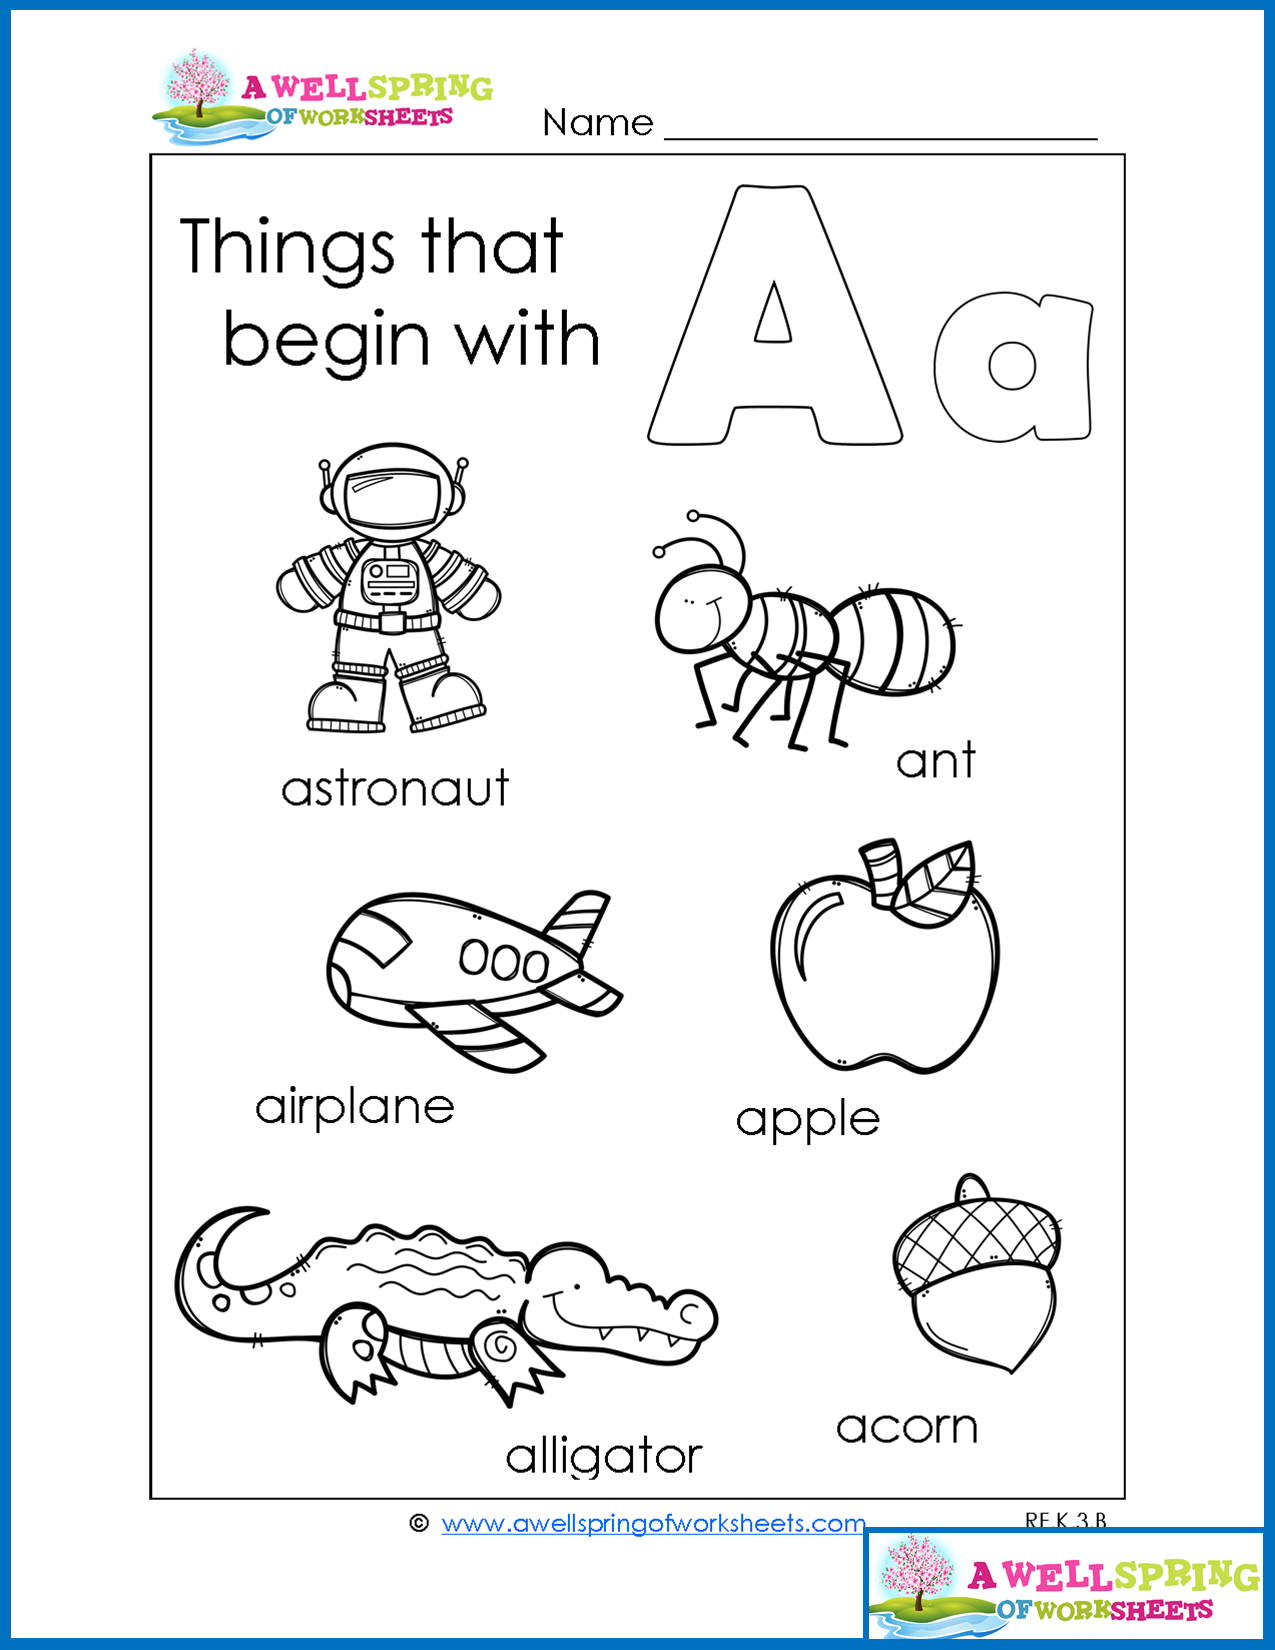 Worksheets by Subject | Pinterest